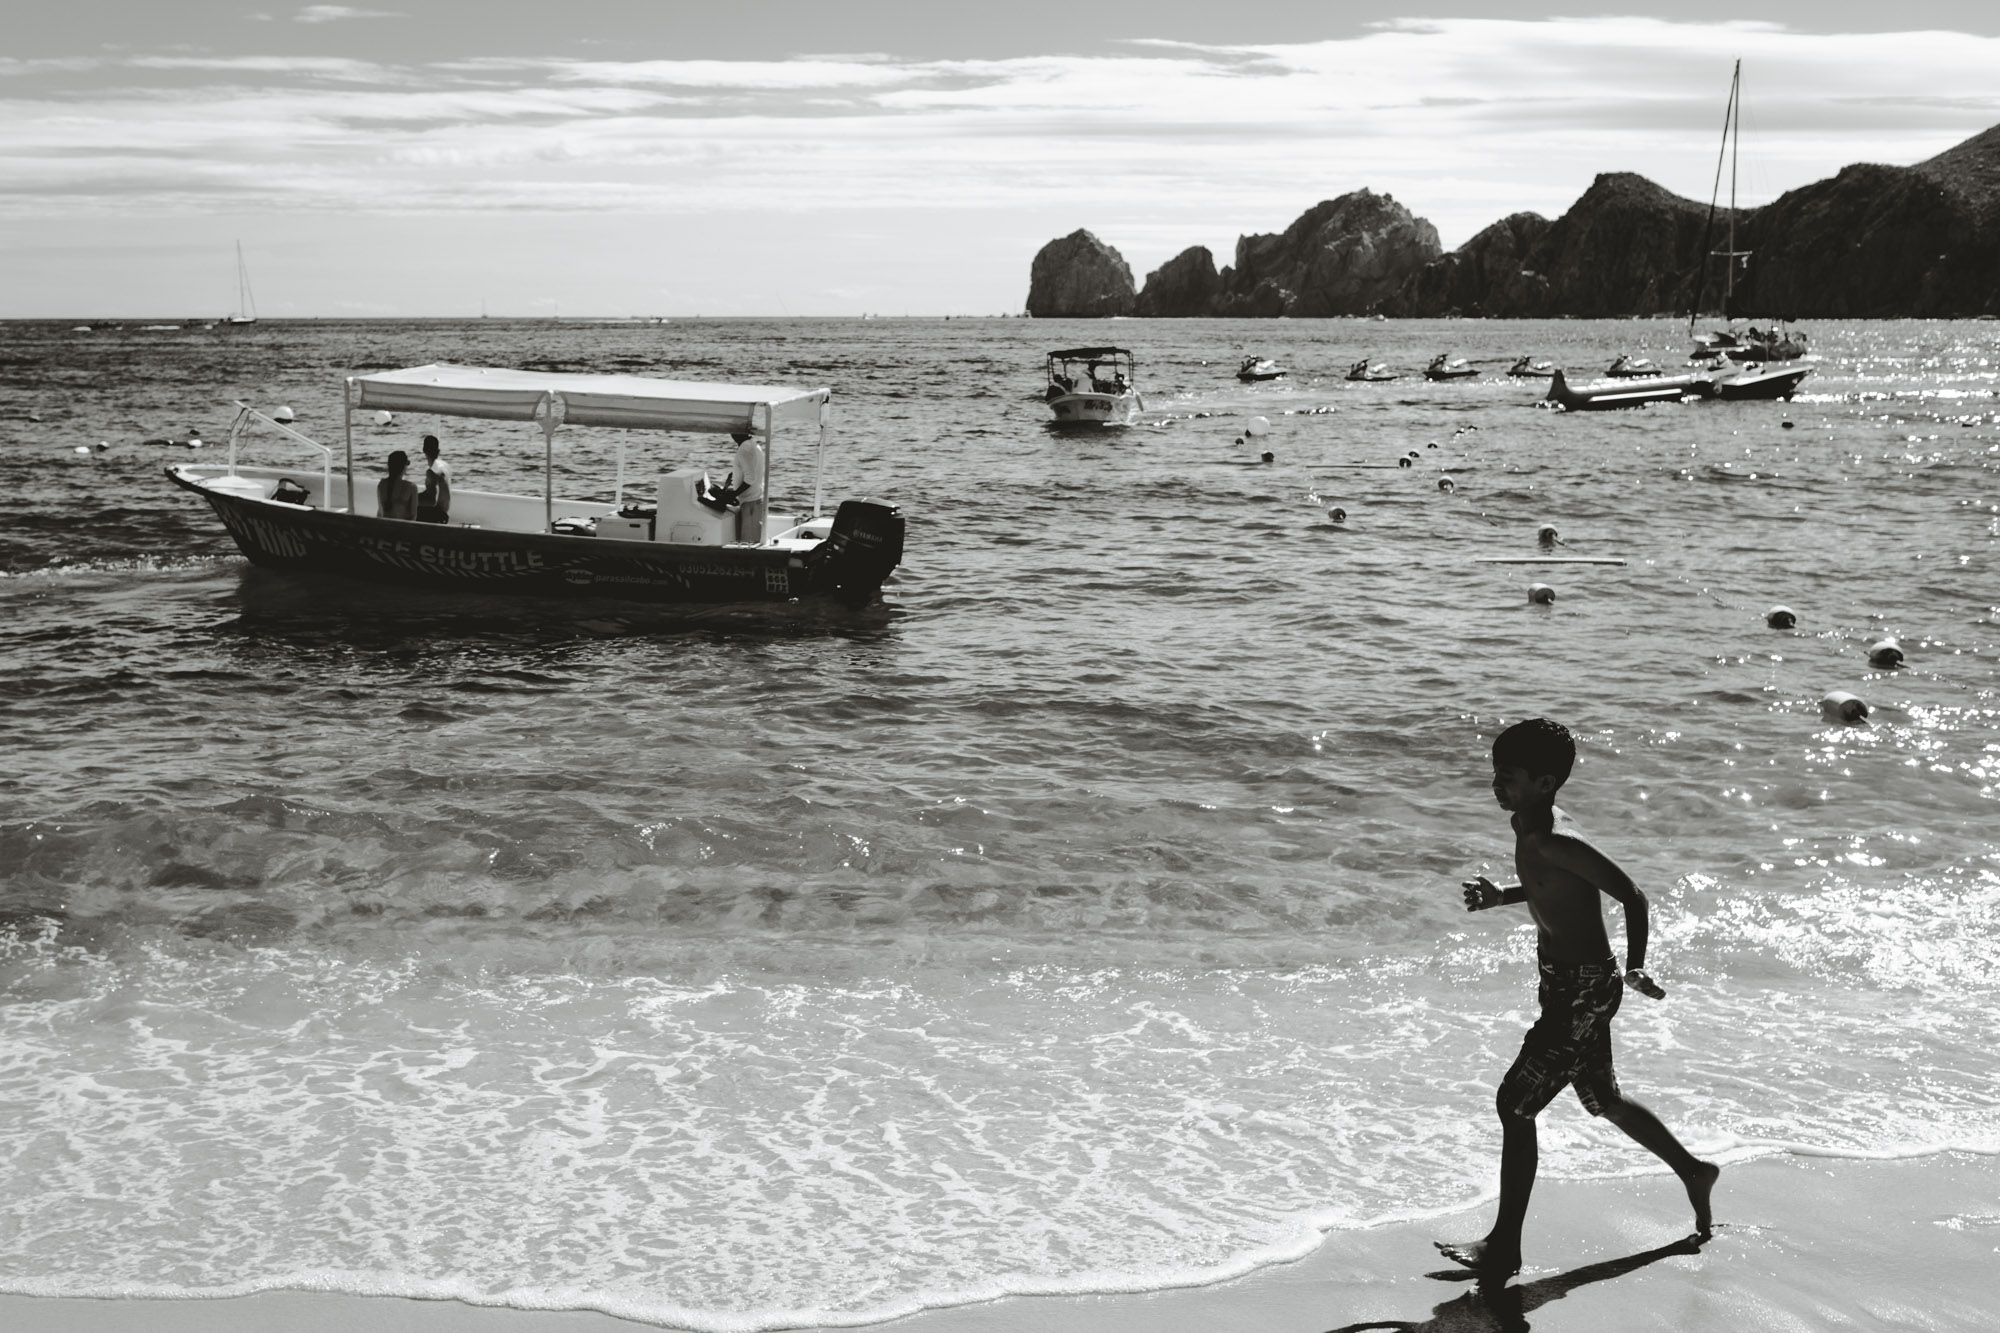 A boy's silhouette runs across the beach in Cabo San Lucas